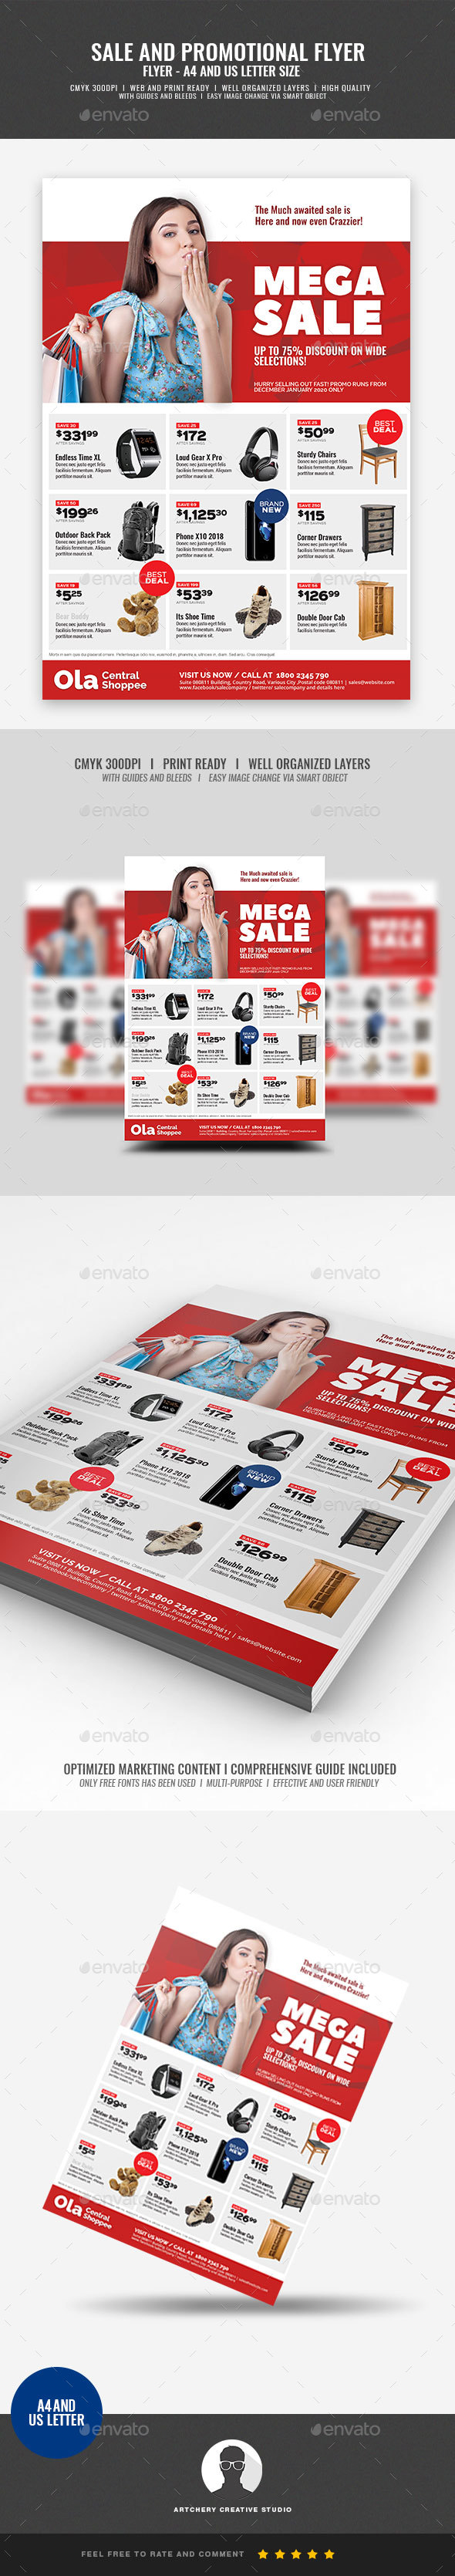 Product Sale and Promotional Flyer - Corporate Flyers